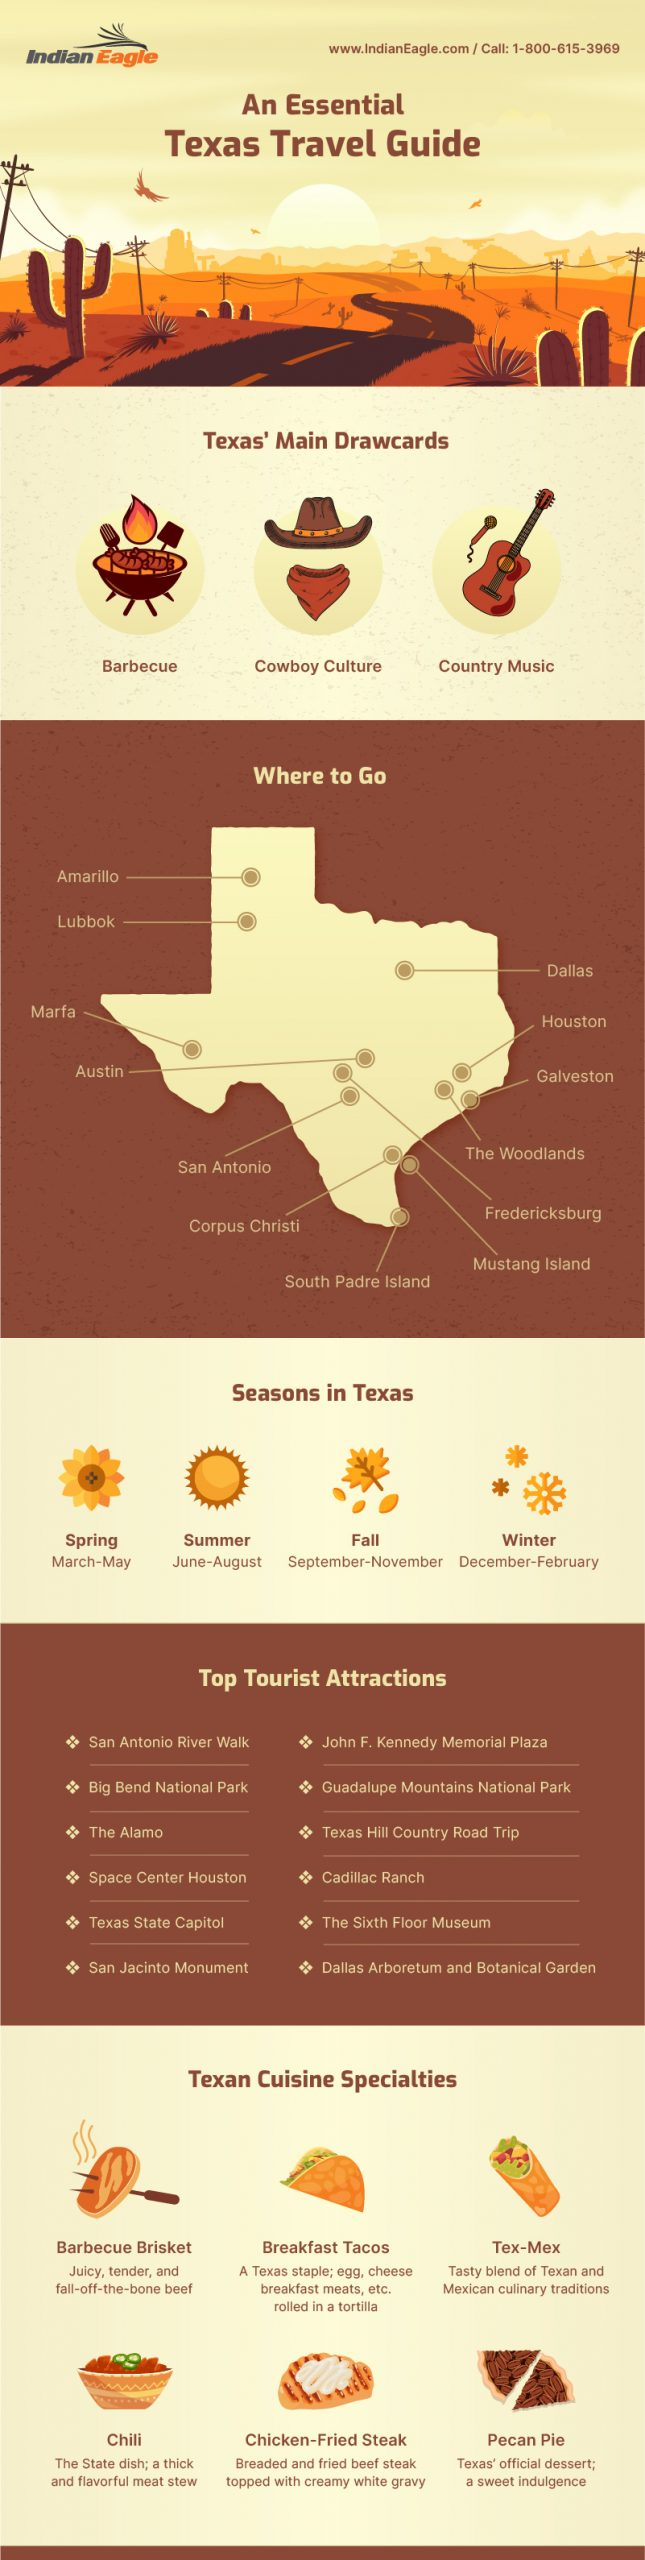 Texas Travel Guide - Infographic